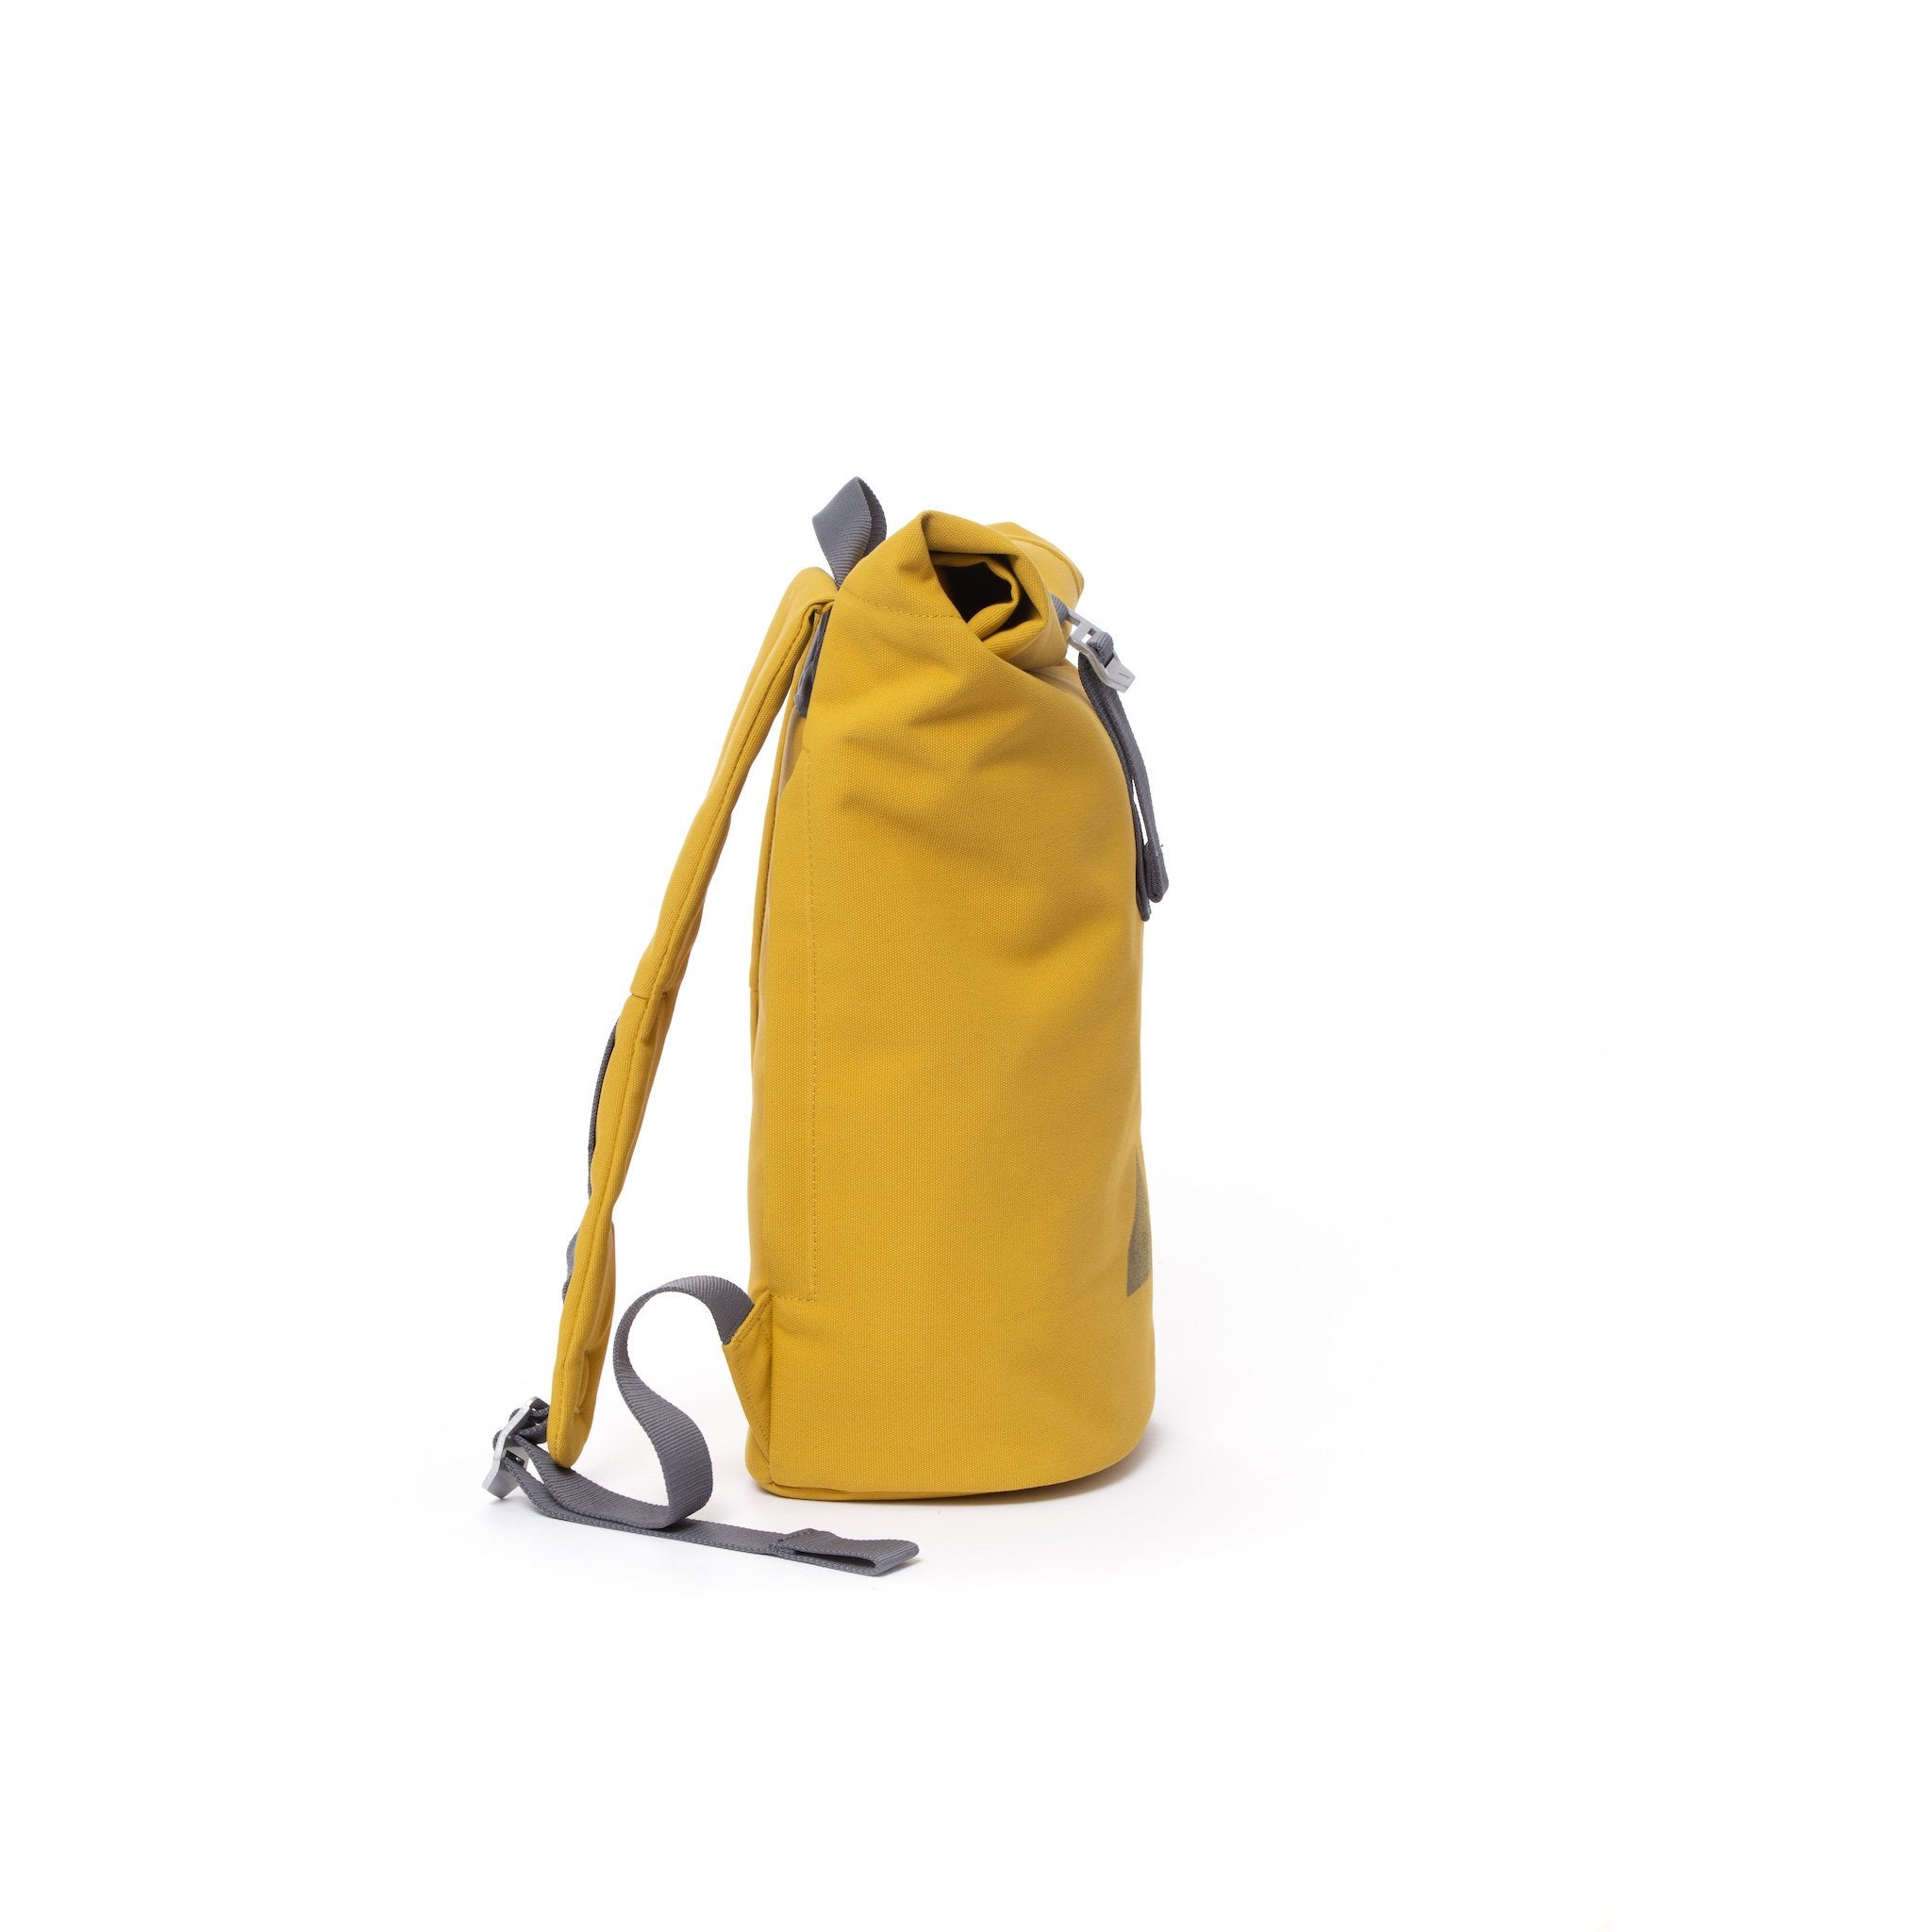 Yellow waterproof canvas women's rolltop backpack.